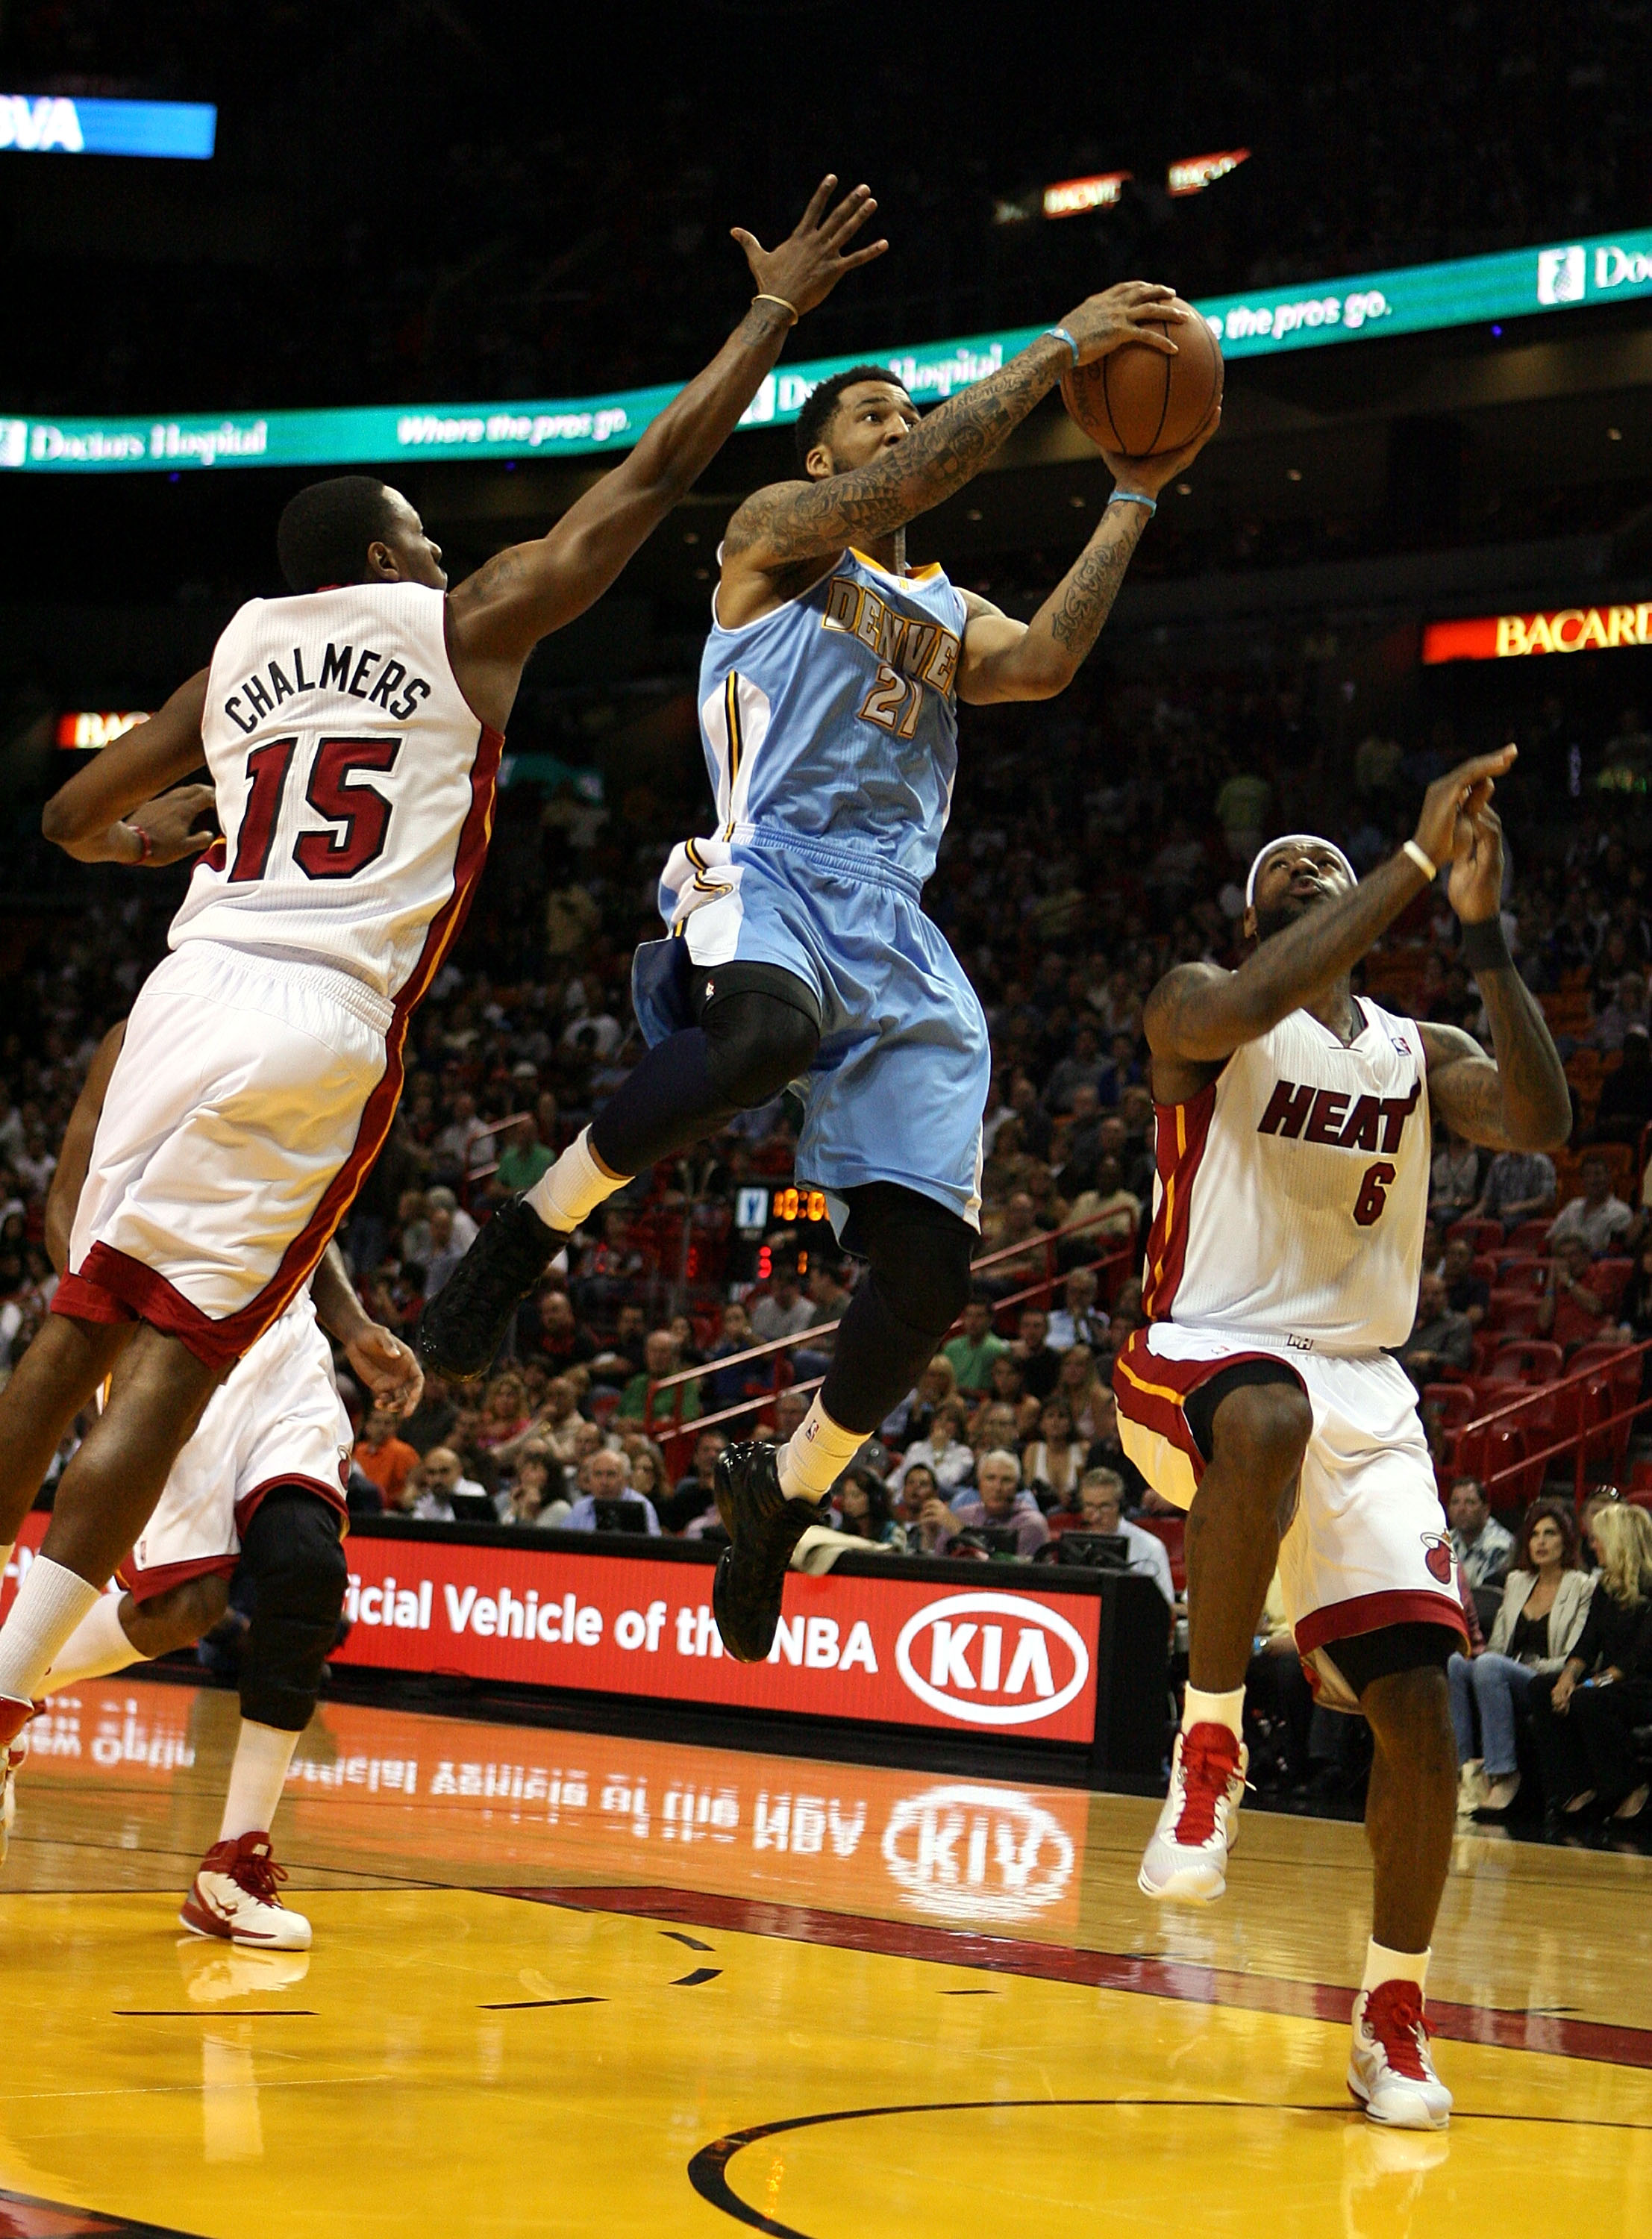 MIAMI, FL - MARCH 19:  Forward Wilson Chandler #21 of the Denver Nuggets (C) drives against Mario Chambers #15 and Dwyane Wade #3 of the Miami Heat at American Airlines Arena on March 19, 2011 in Miami, Florida.  The Heat defeated the Nuggets 103-98. NOTE